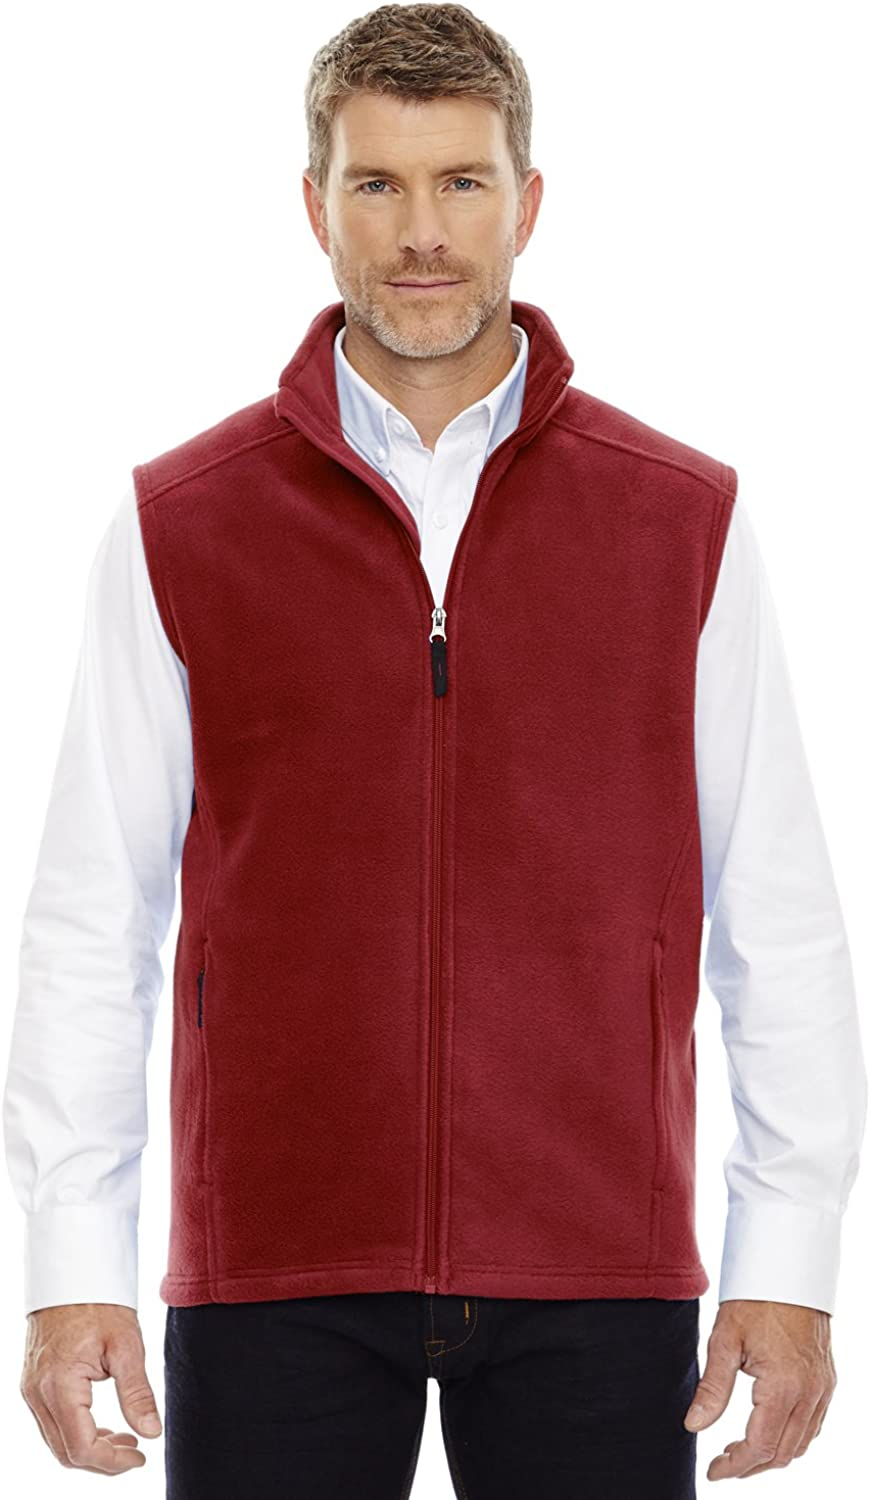 Ash City - Core Max 82% OFF Pockets 365 Max 87% OFF Tricot-Lined JourneyMen's